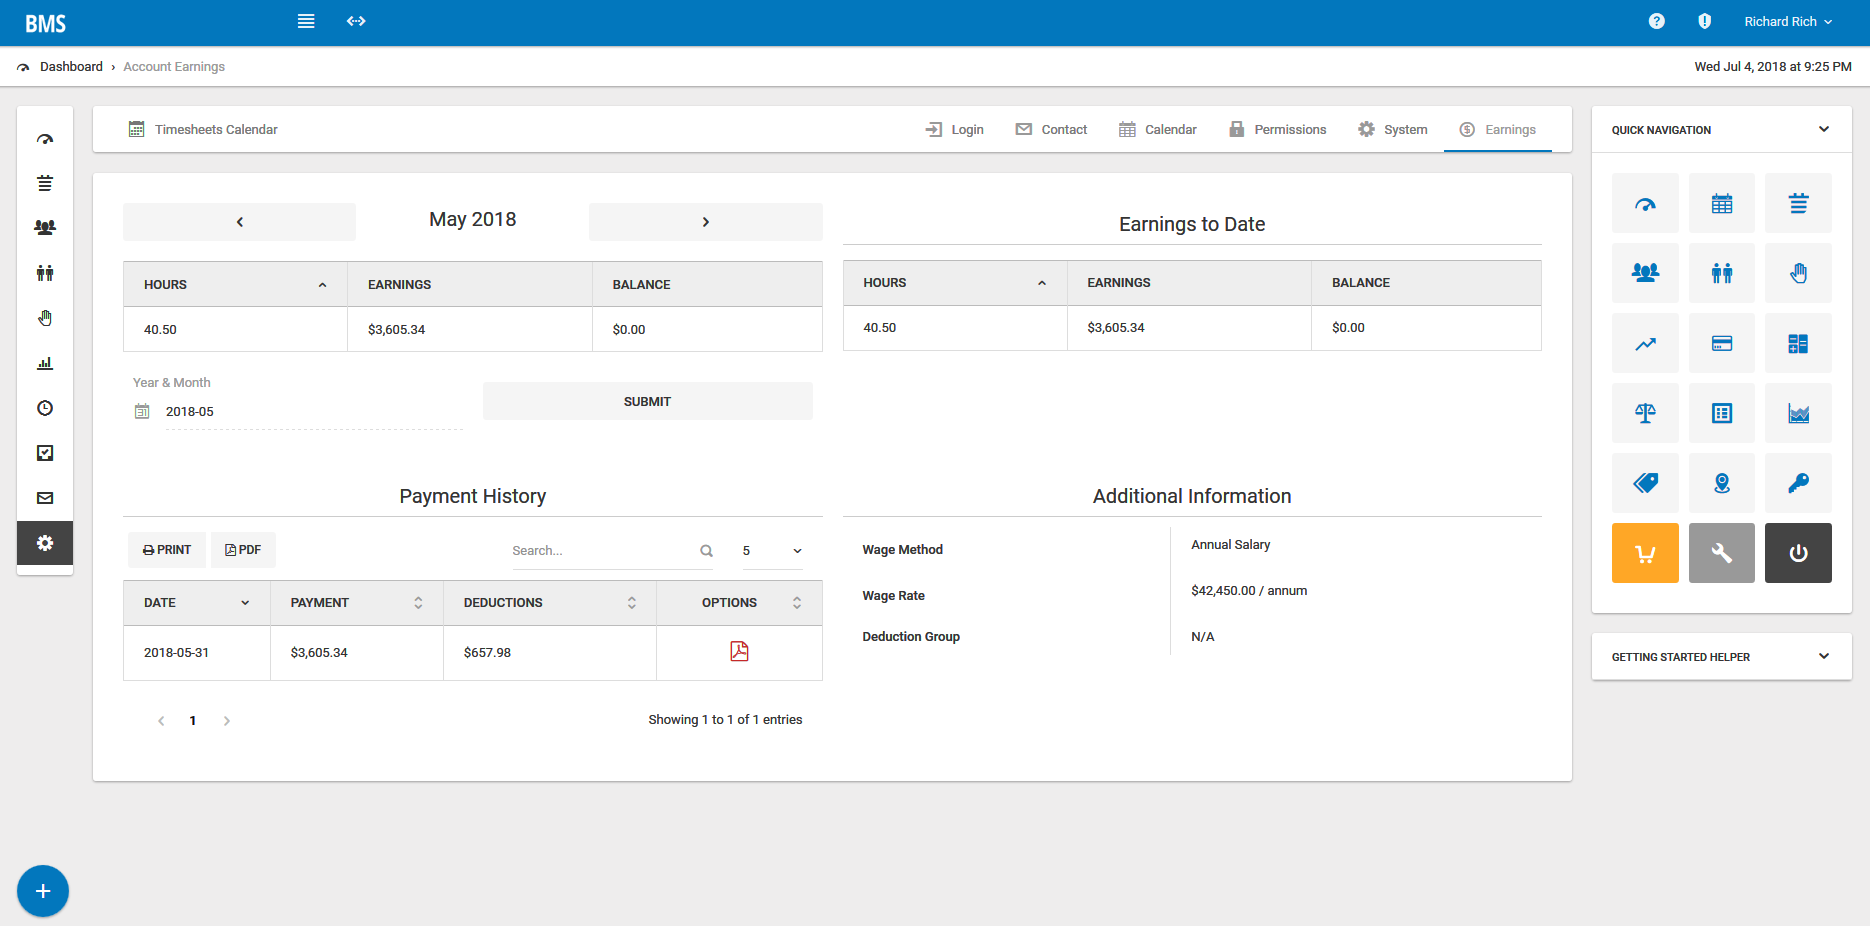 Timesheets can be managed within Bizstim and management can set up payroll based on hourly and annual salary rates